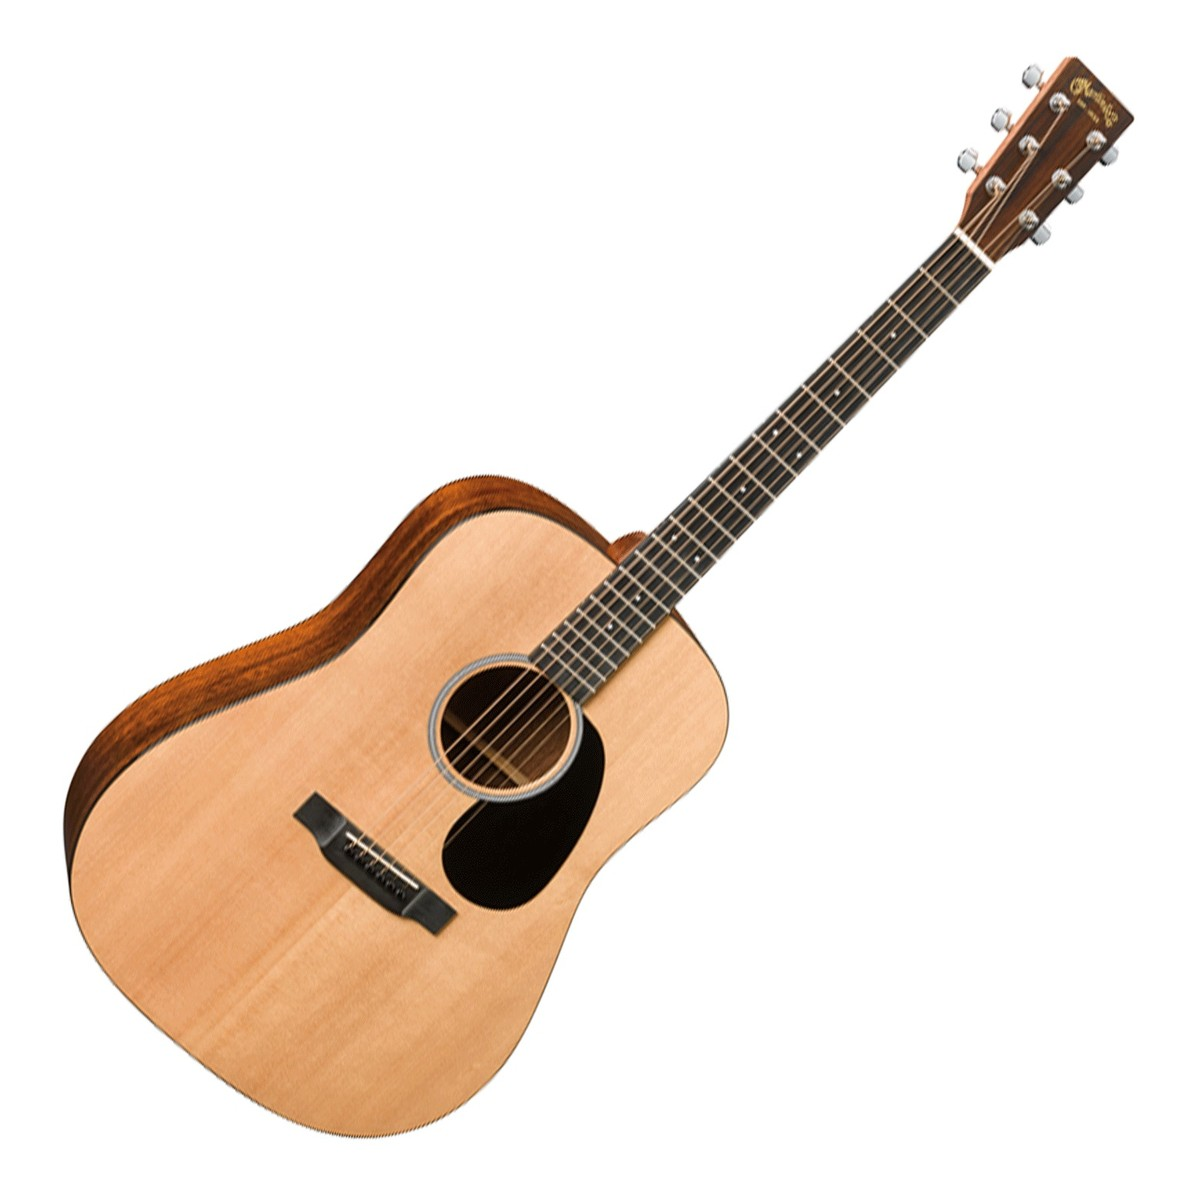 Click to view product details and reviews for Martin Drsg Electro Acoustic Guitar Natural.